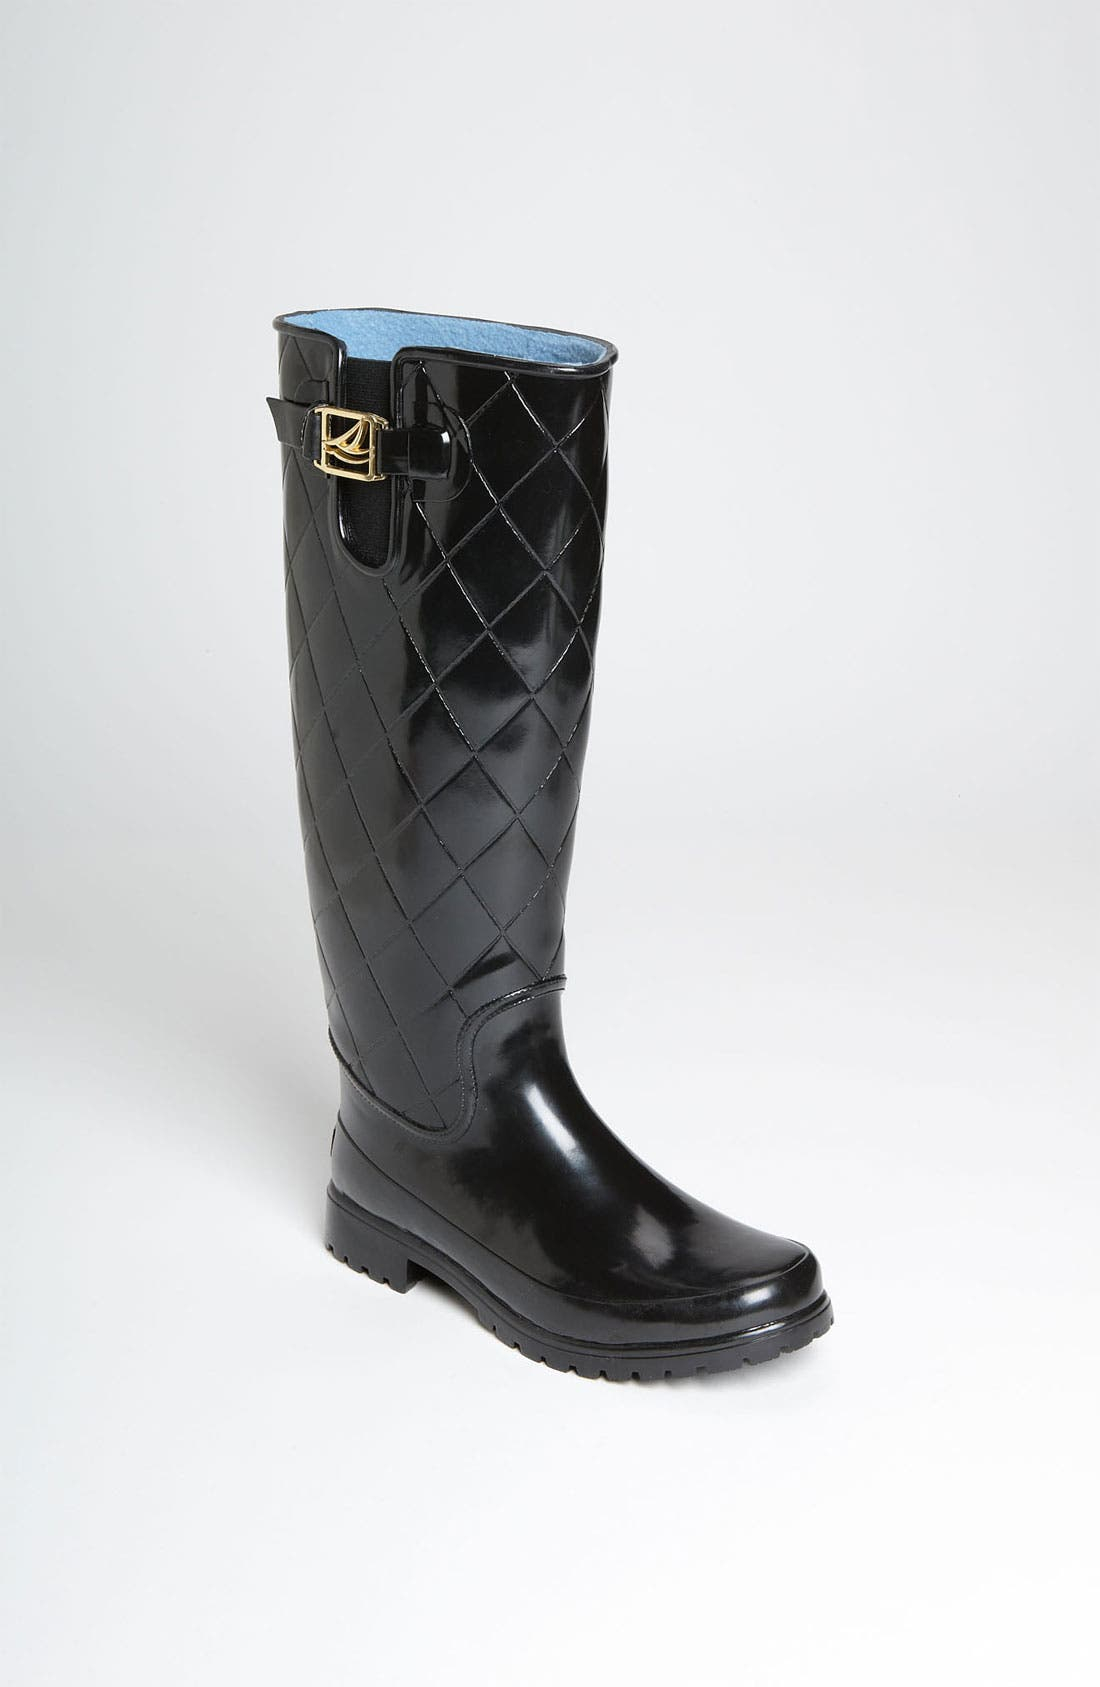 Alternate Image 1 Selected - Sperry Top-Sider® 'Pelican Too' Rain Boot (Women)(Special Purchase)